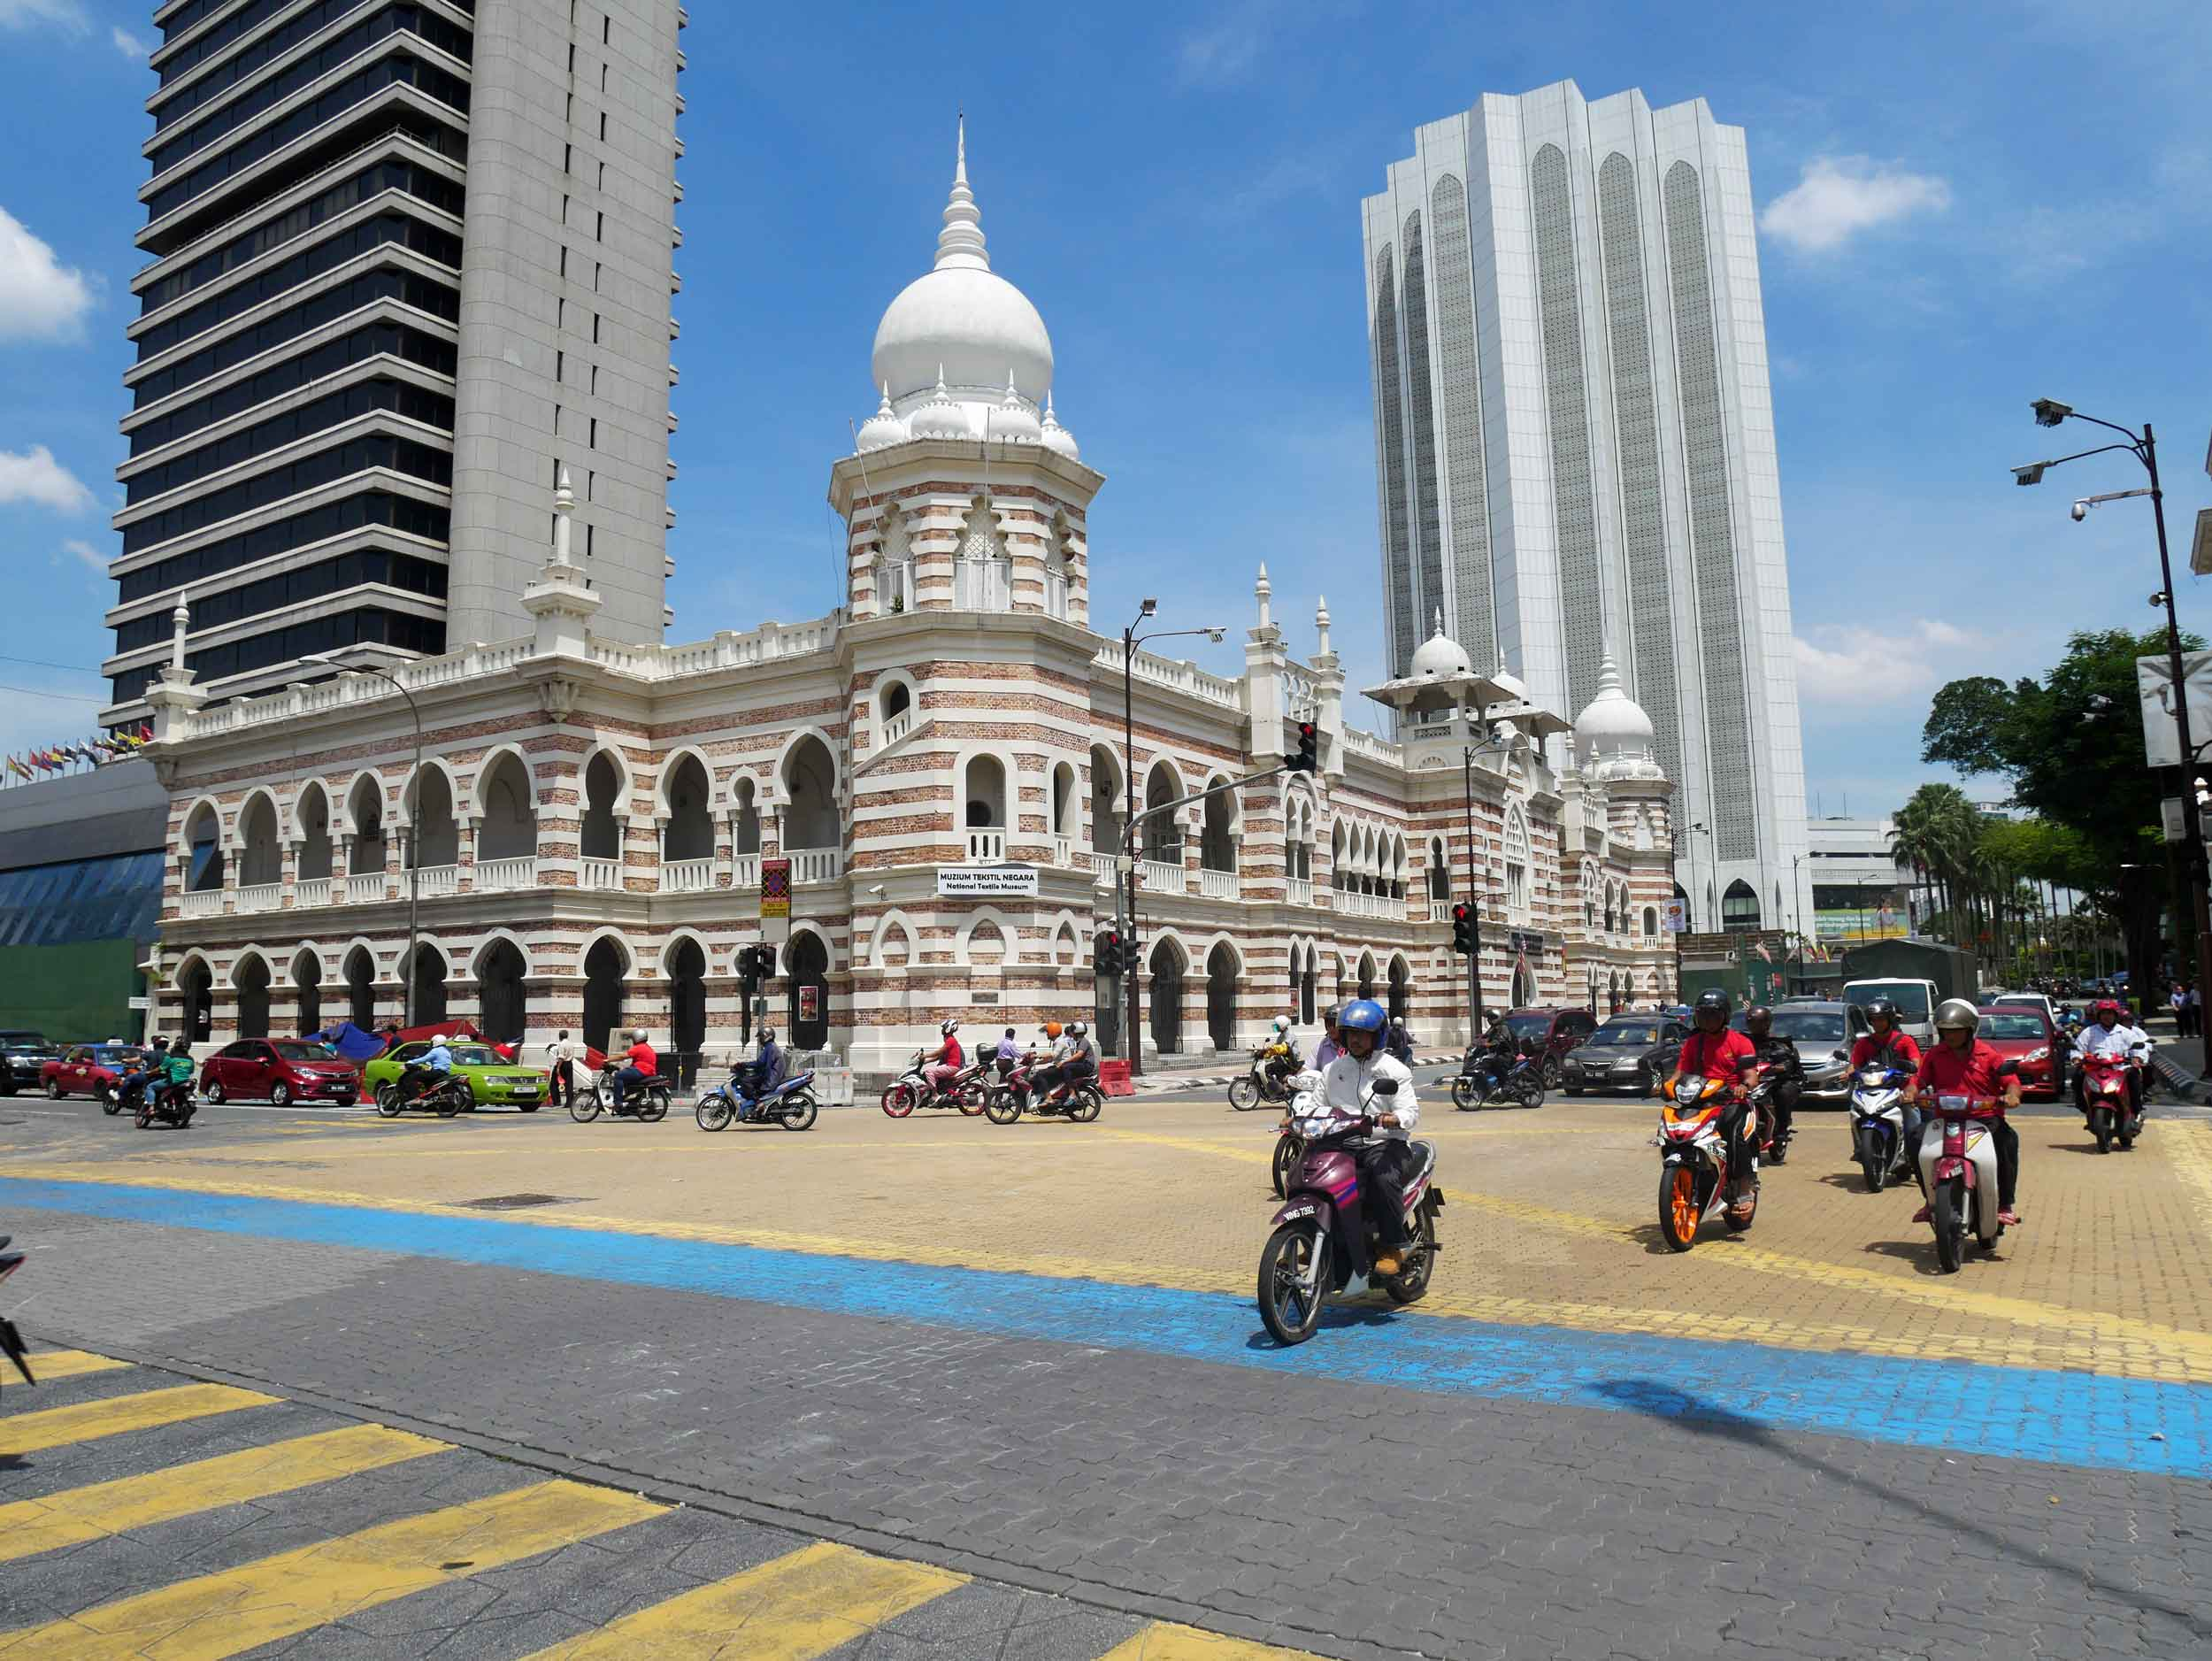 Just off Merdeka Square, where the Malaysian flag was lifted for the first time at their independence in 1957, visitors can see the blend of colonial British and Islamic architecture.